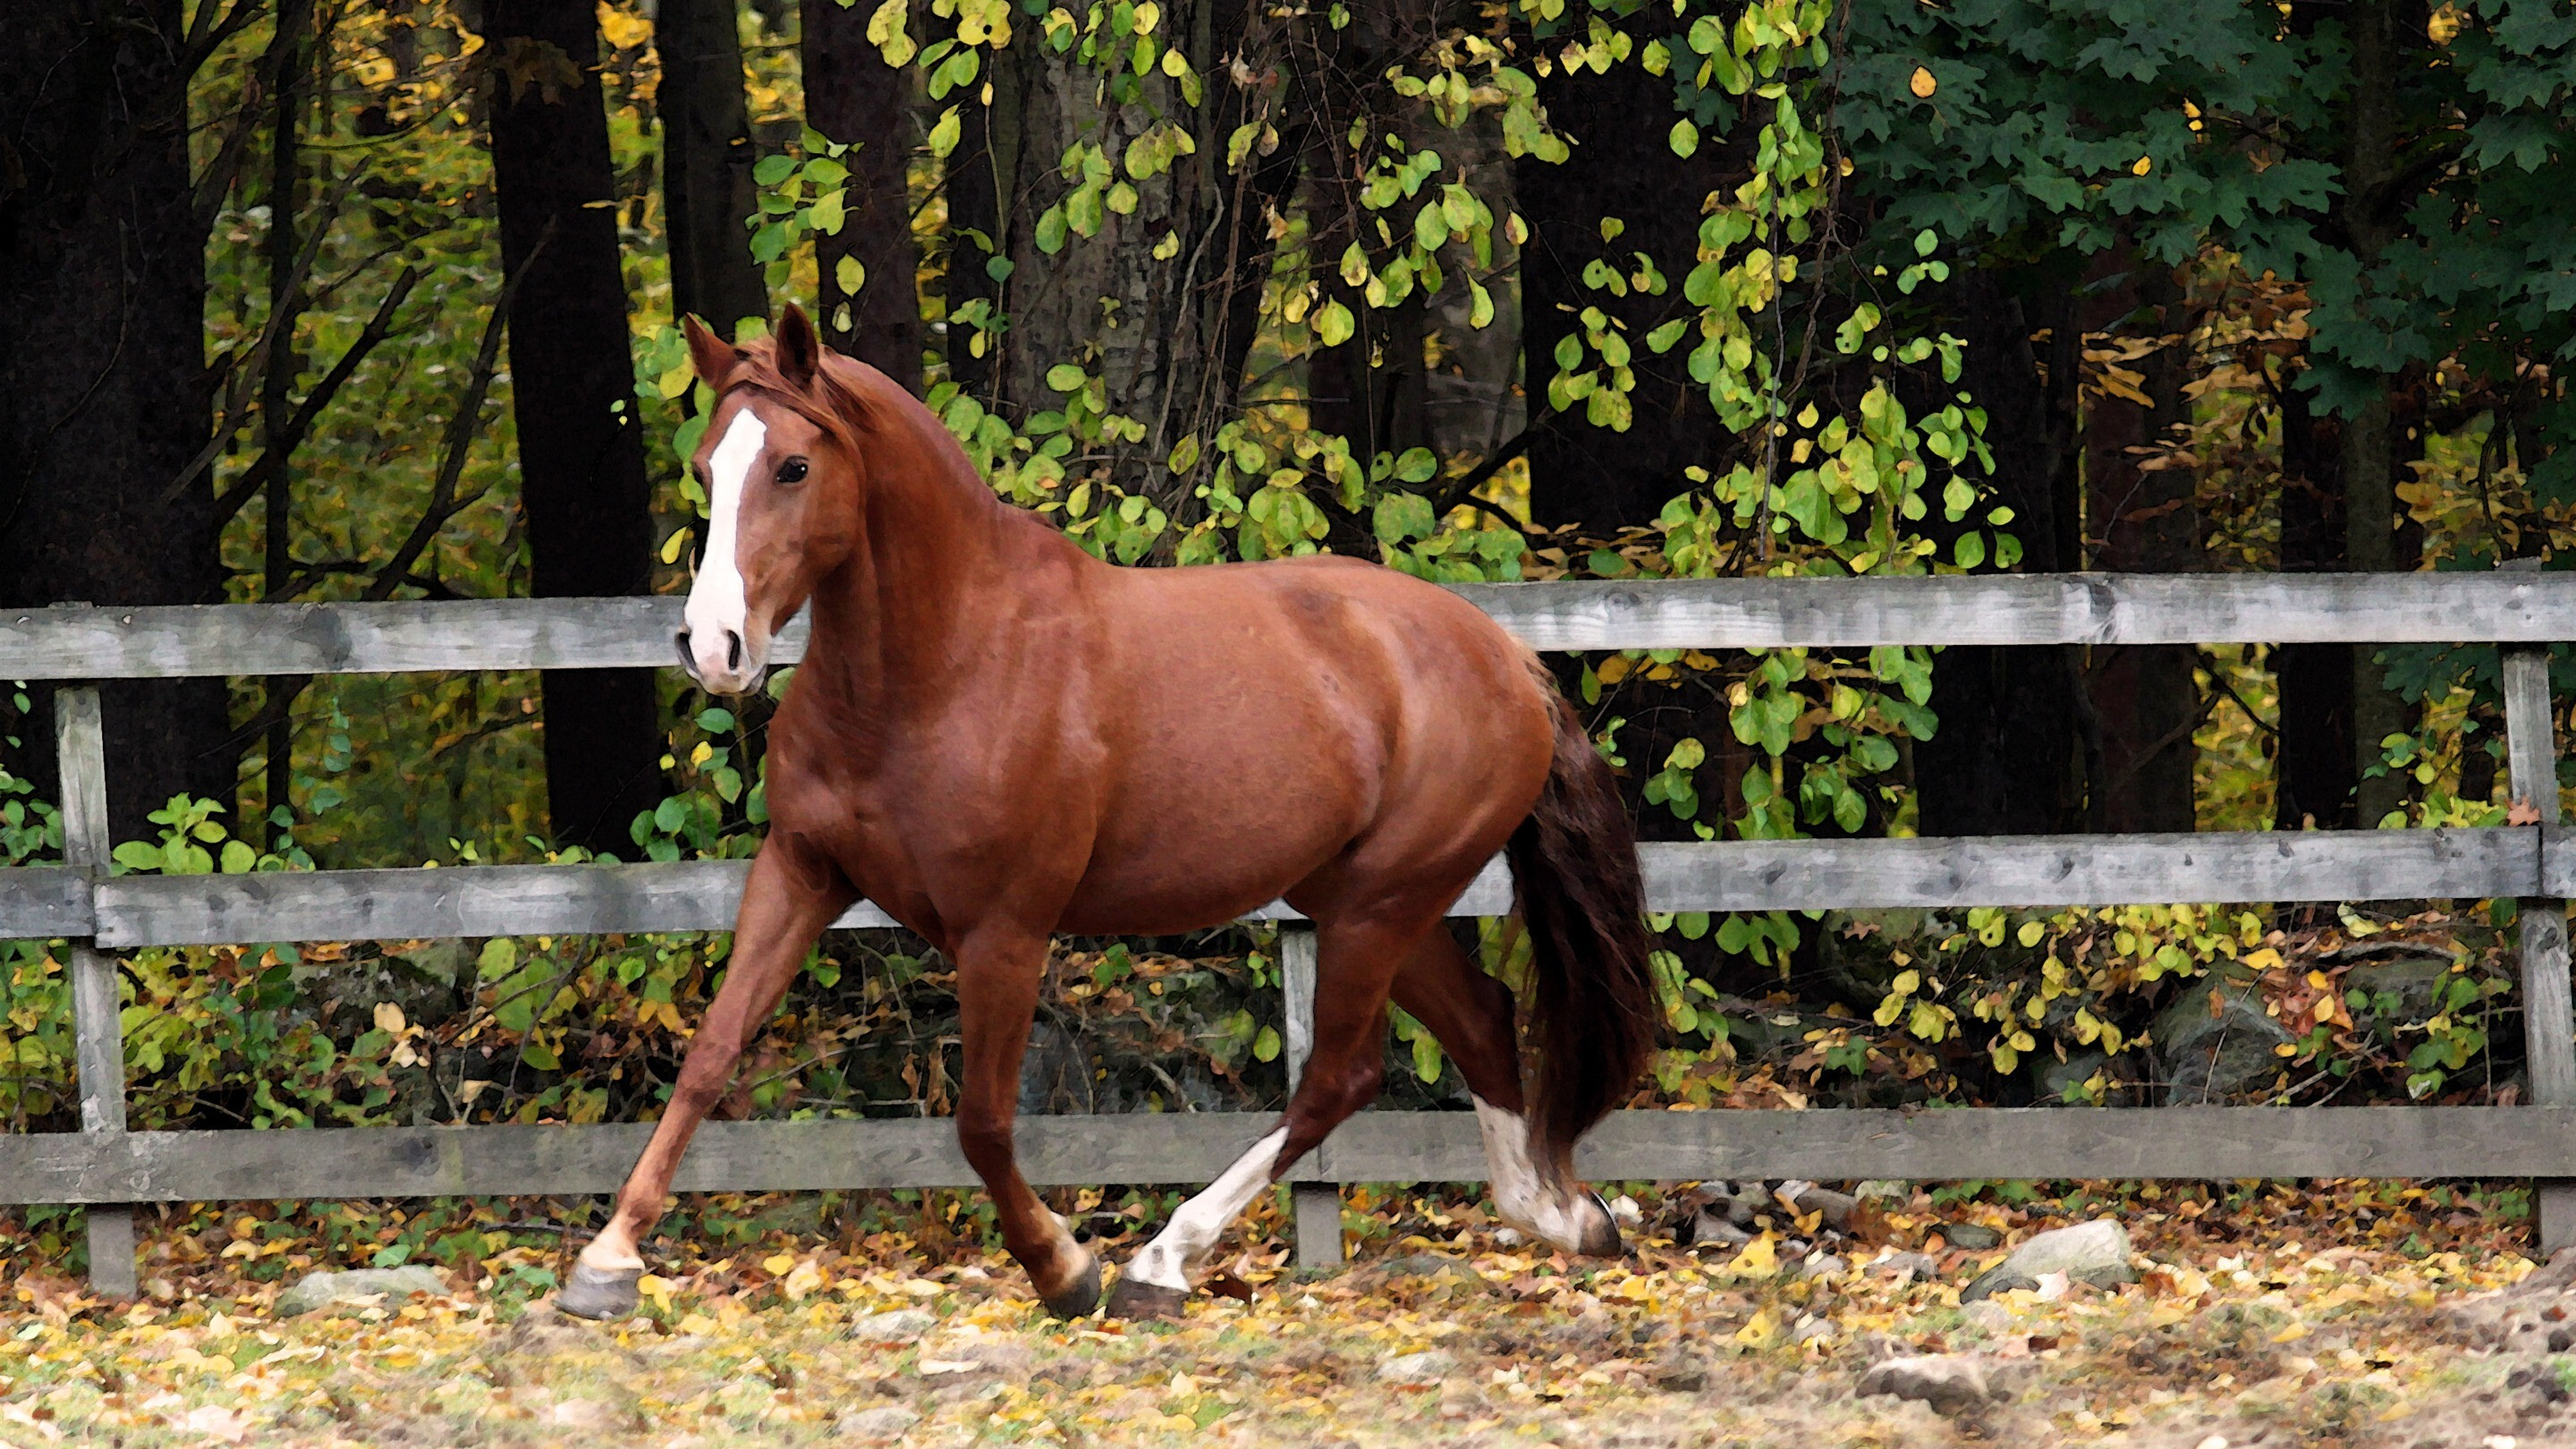 Brown Horse Running Pic Download Hd Wallpapers